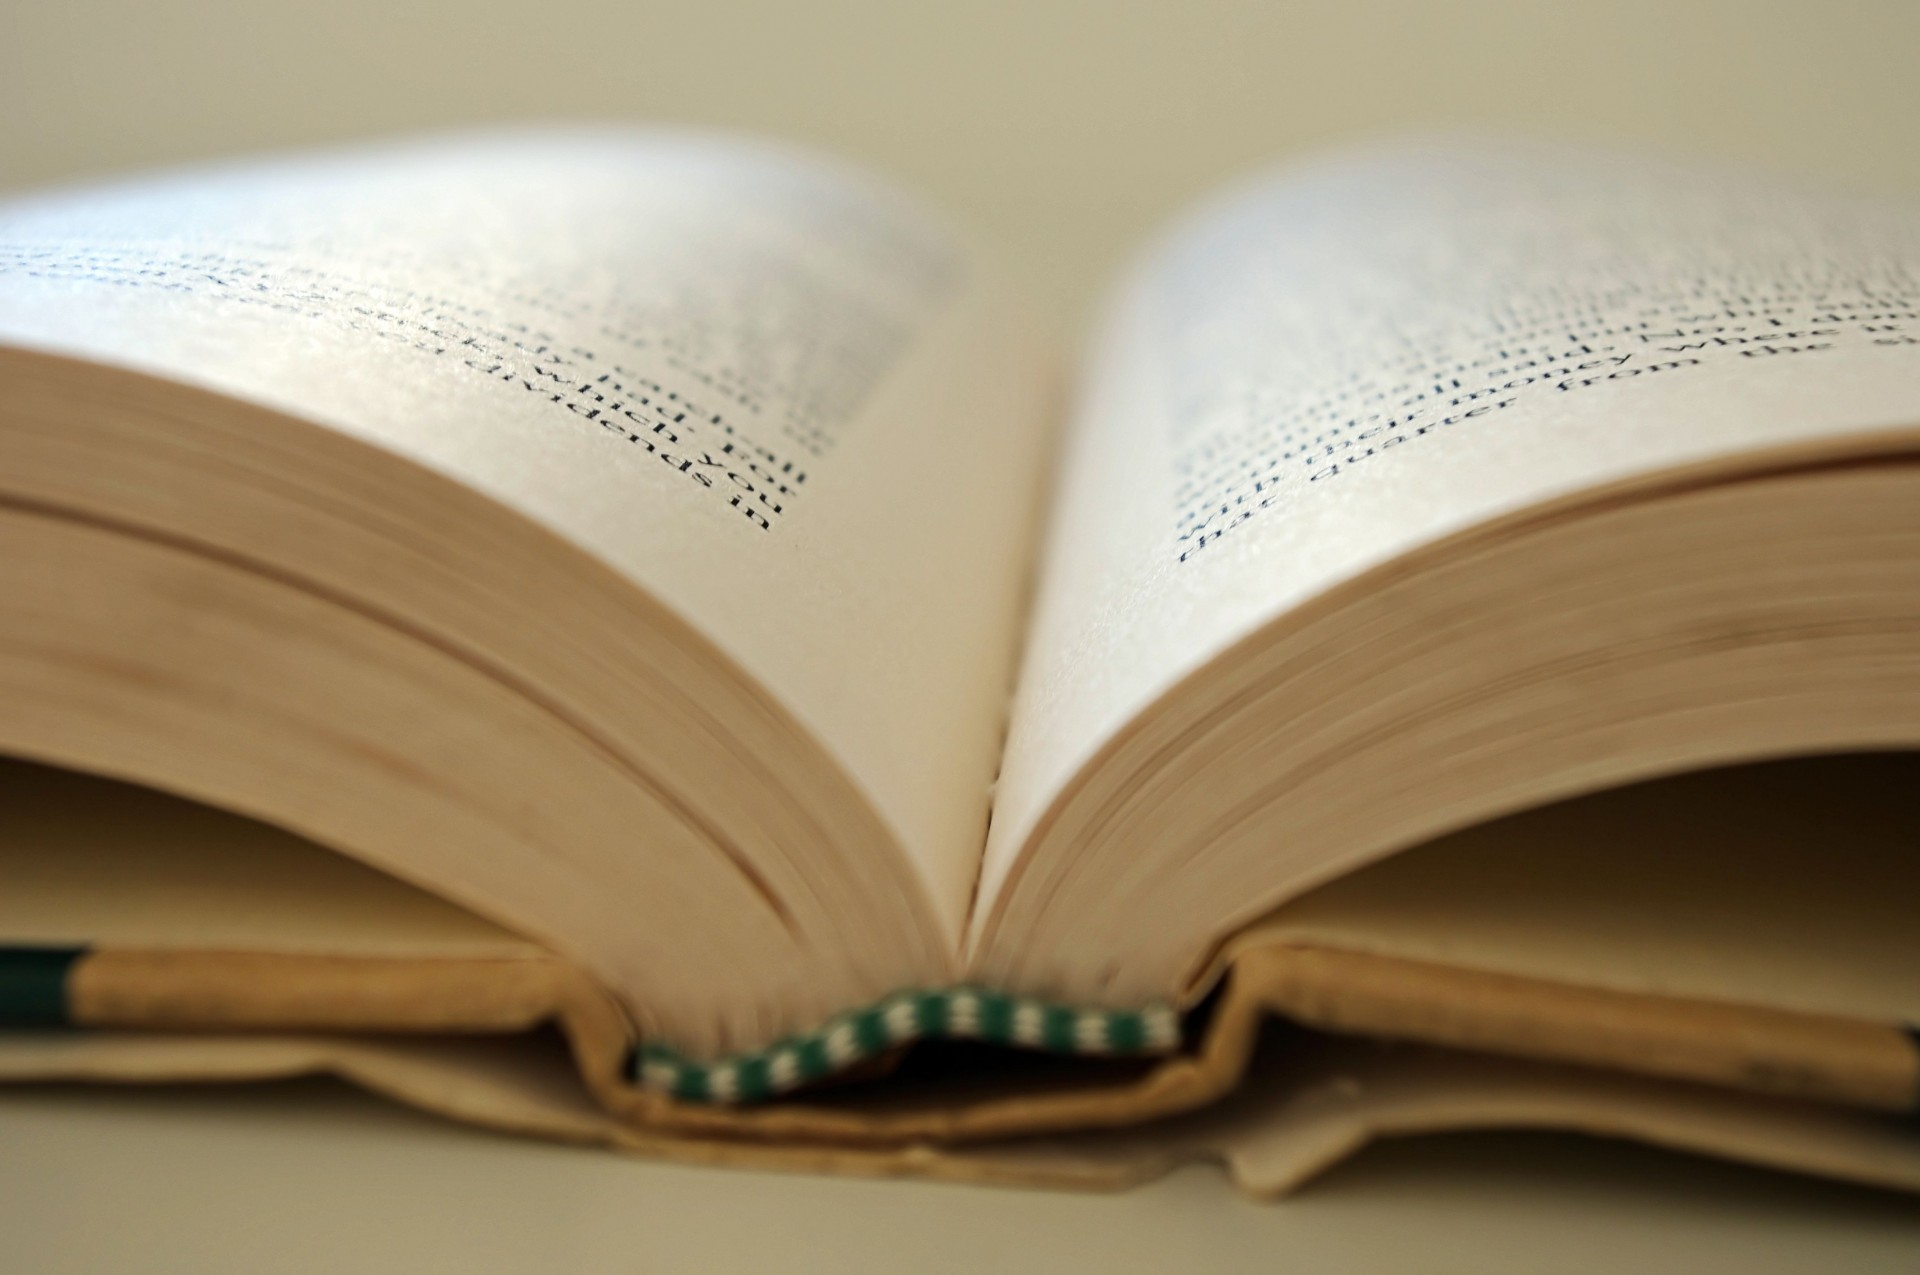 Open Book Free Stock Photo - Public Domain Pictures